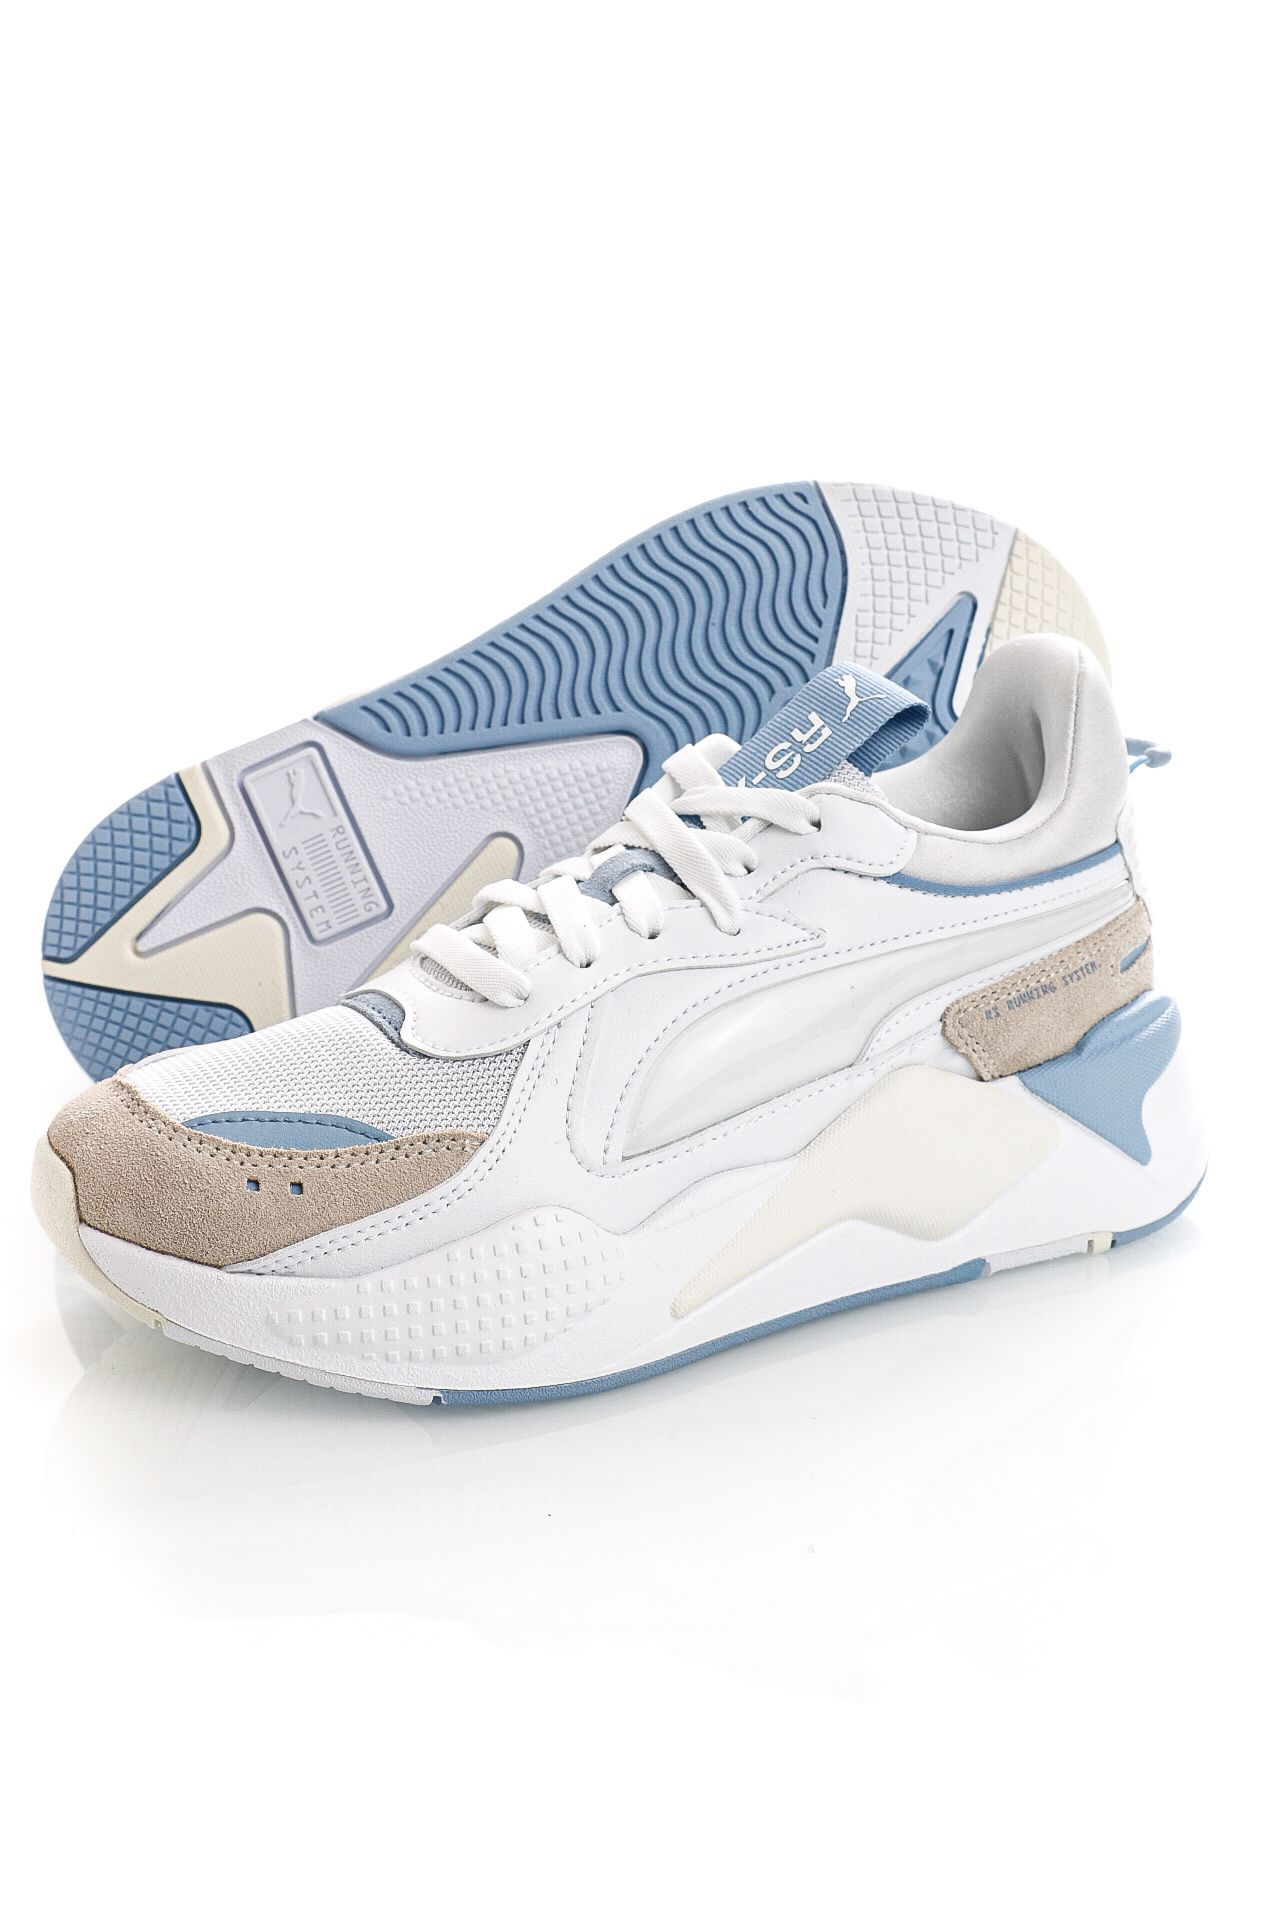 Afbeelding van Puma Sneakers RS-X Bubble Wn's Puma White-Forever Blue 380460302